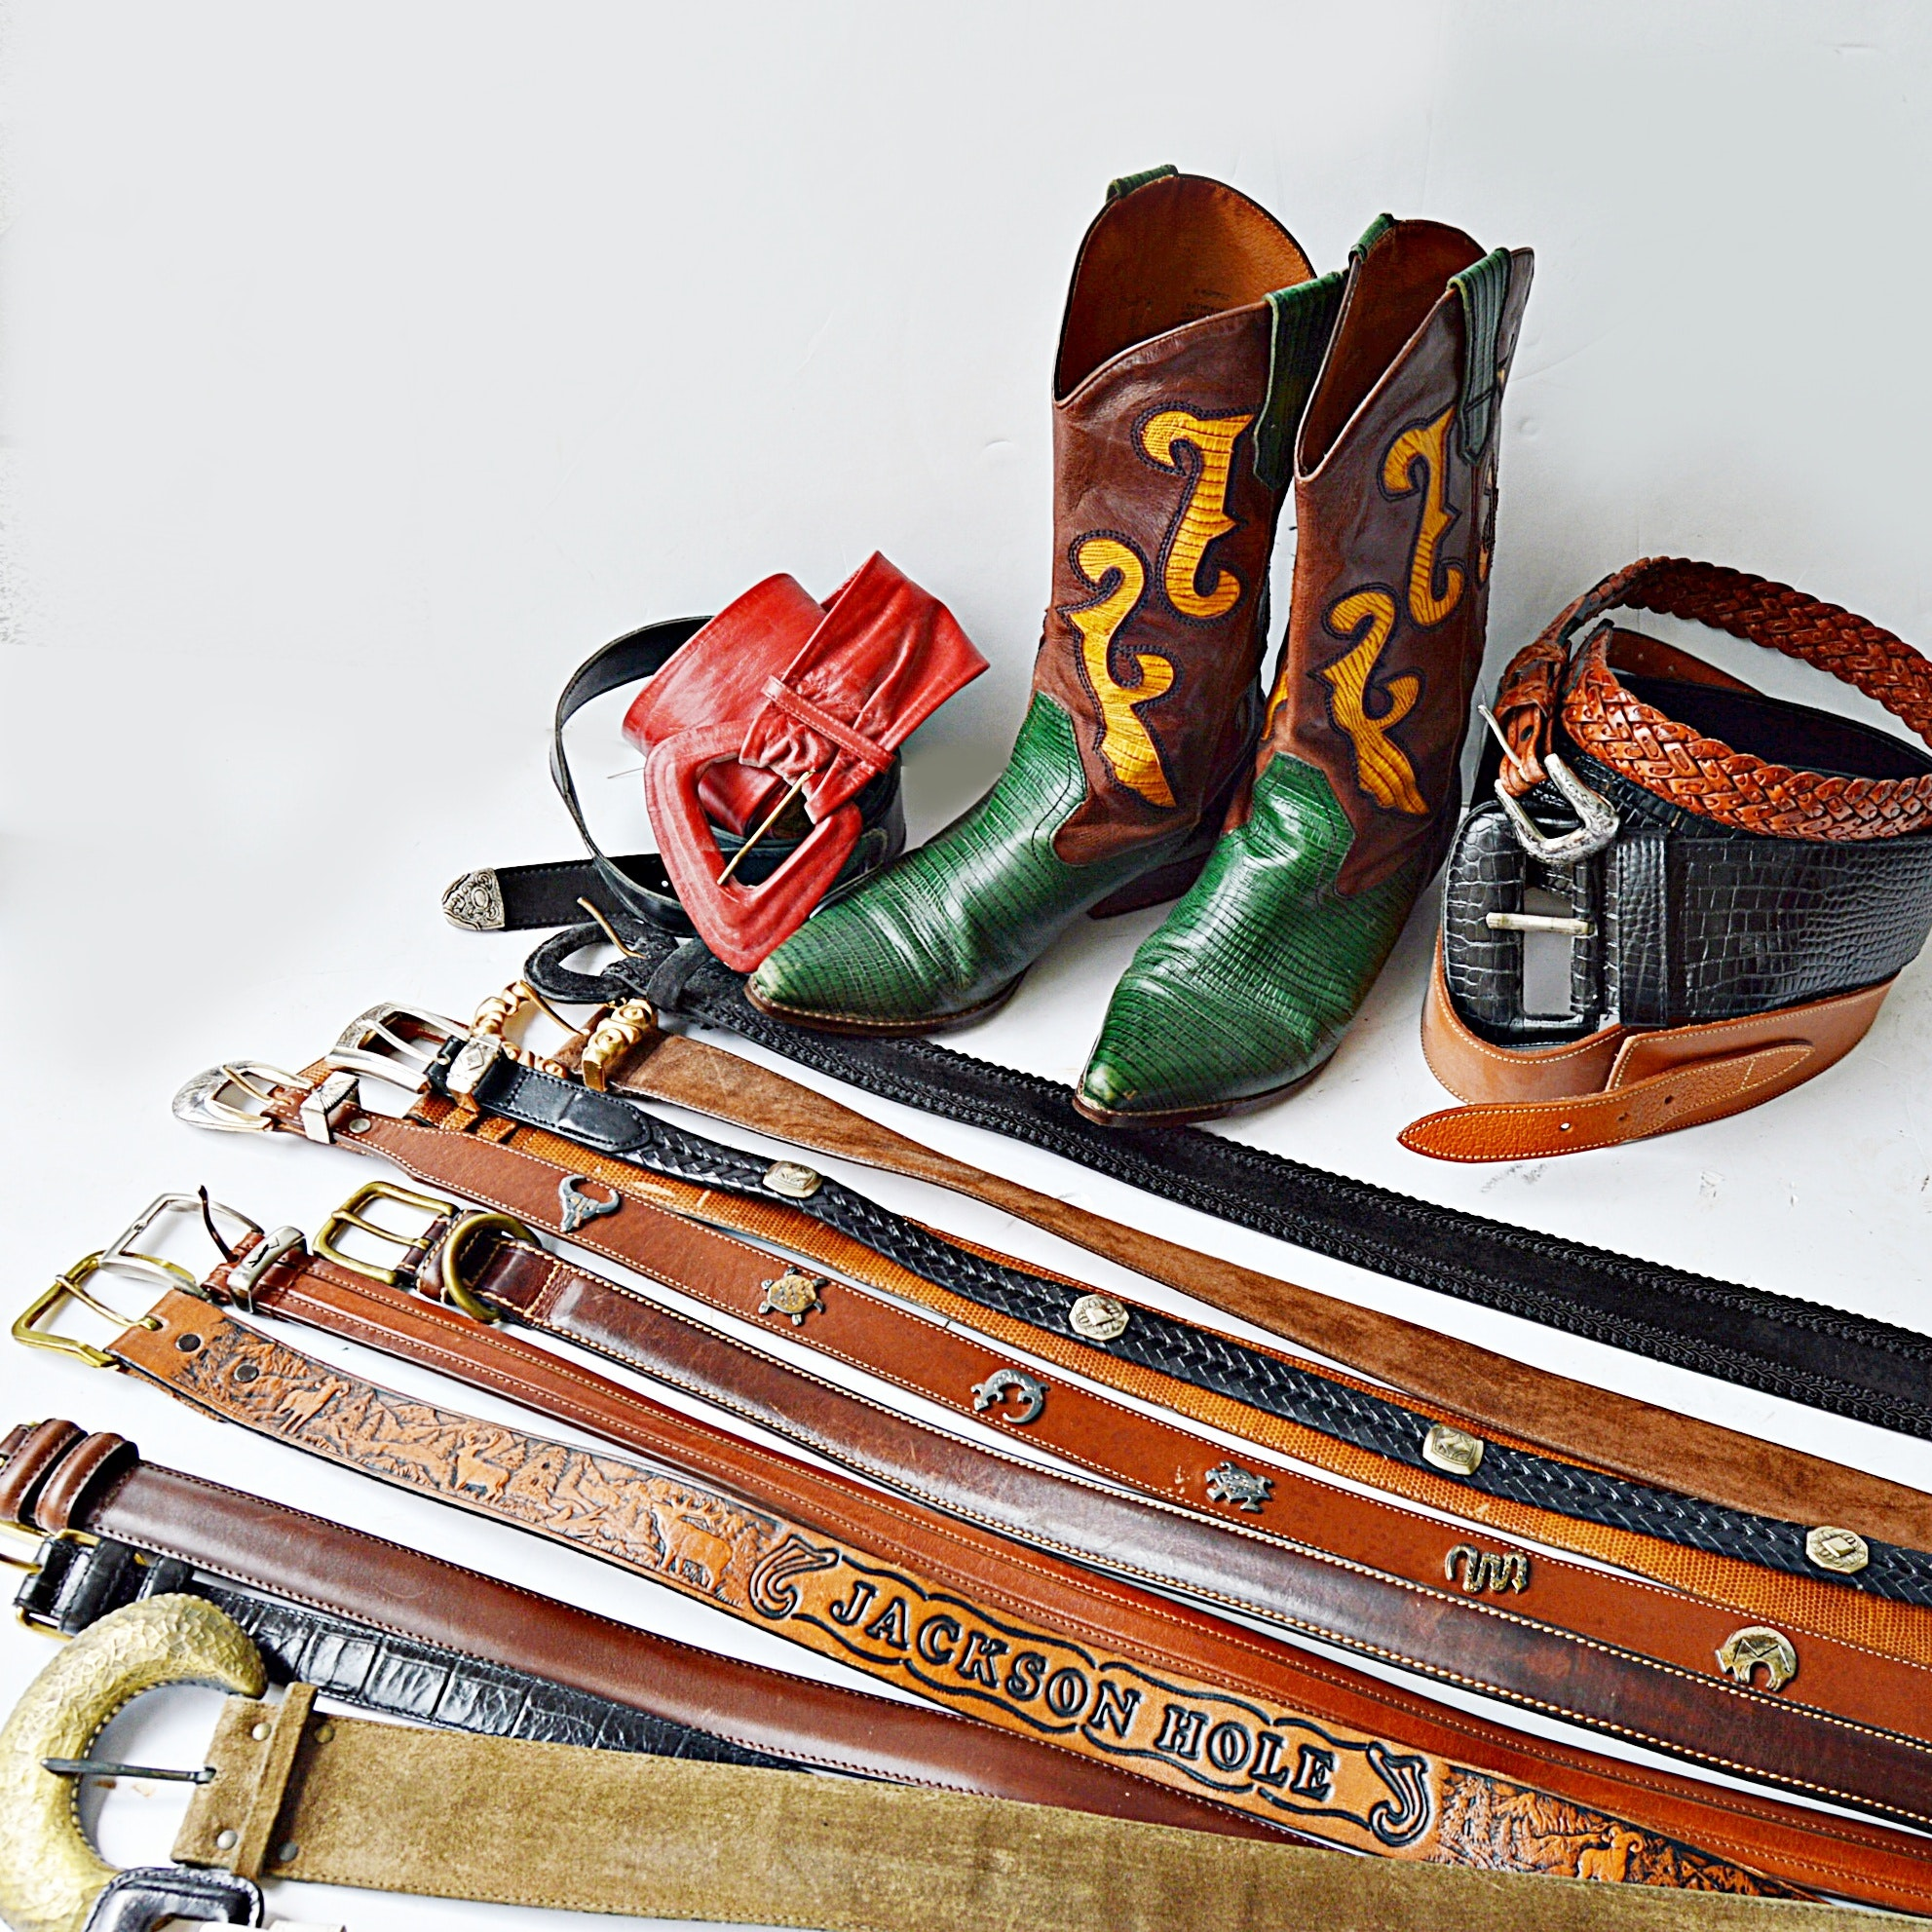 Leather Cowboy Boots and Leather Belt Collection with Brighton